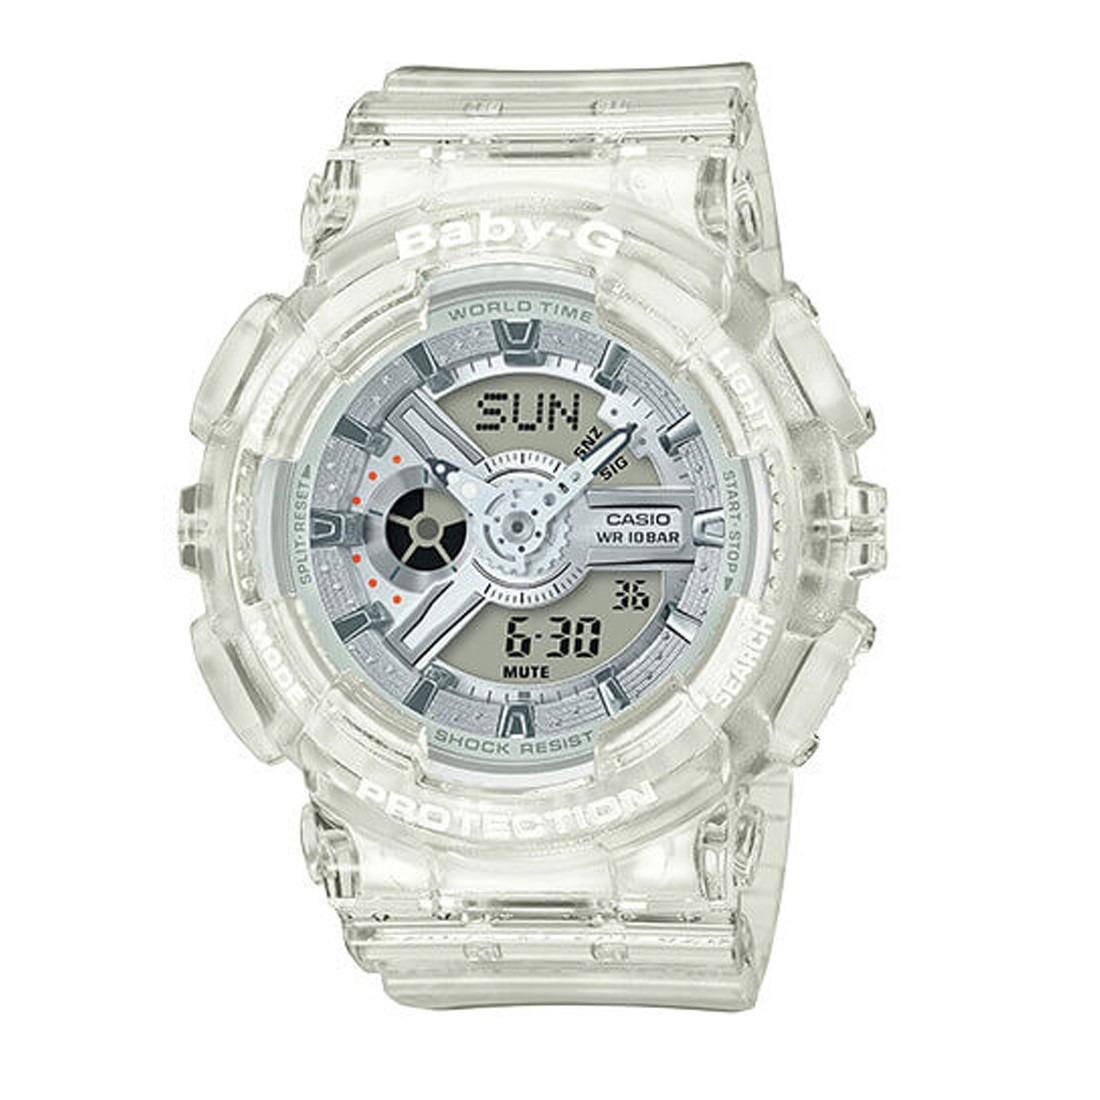 Casio Ba 110cr 7a Baby G Womens Transparent Resin Strap Watch Singapore 112